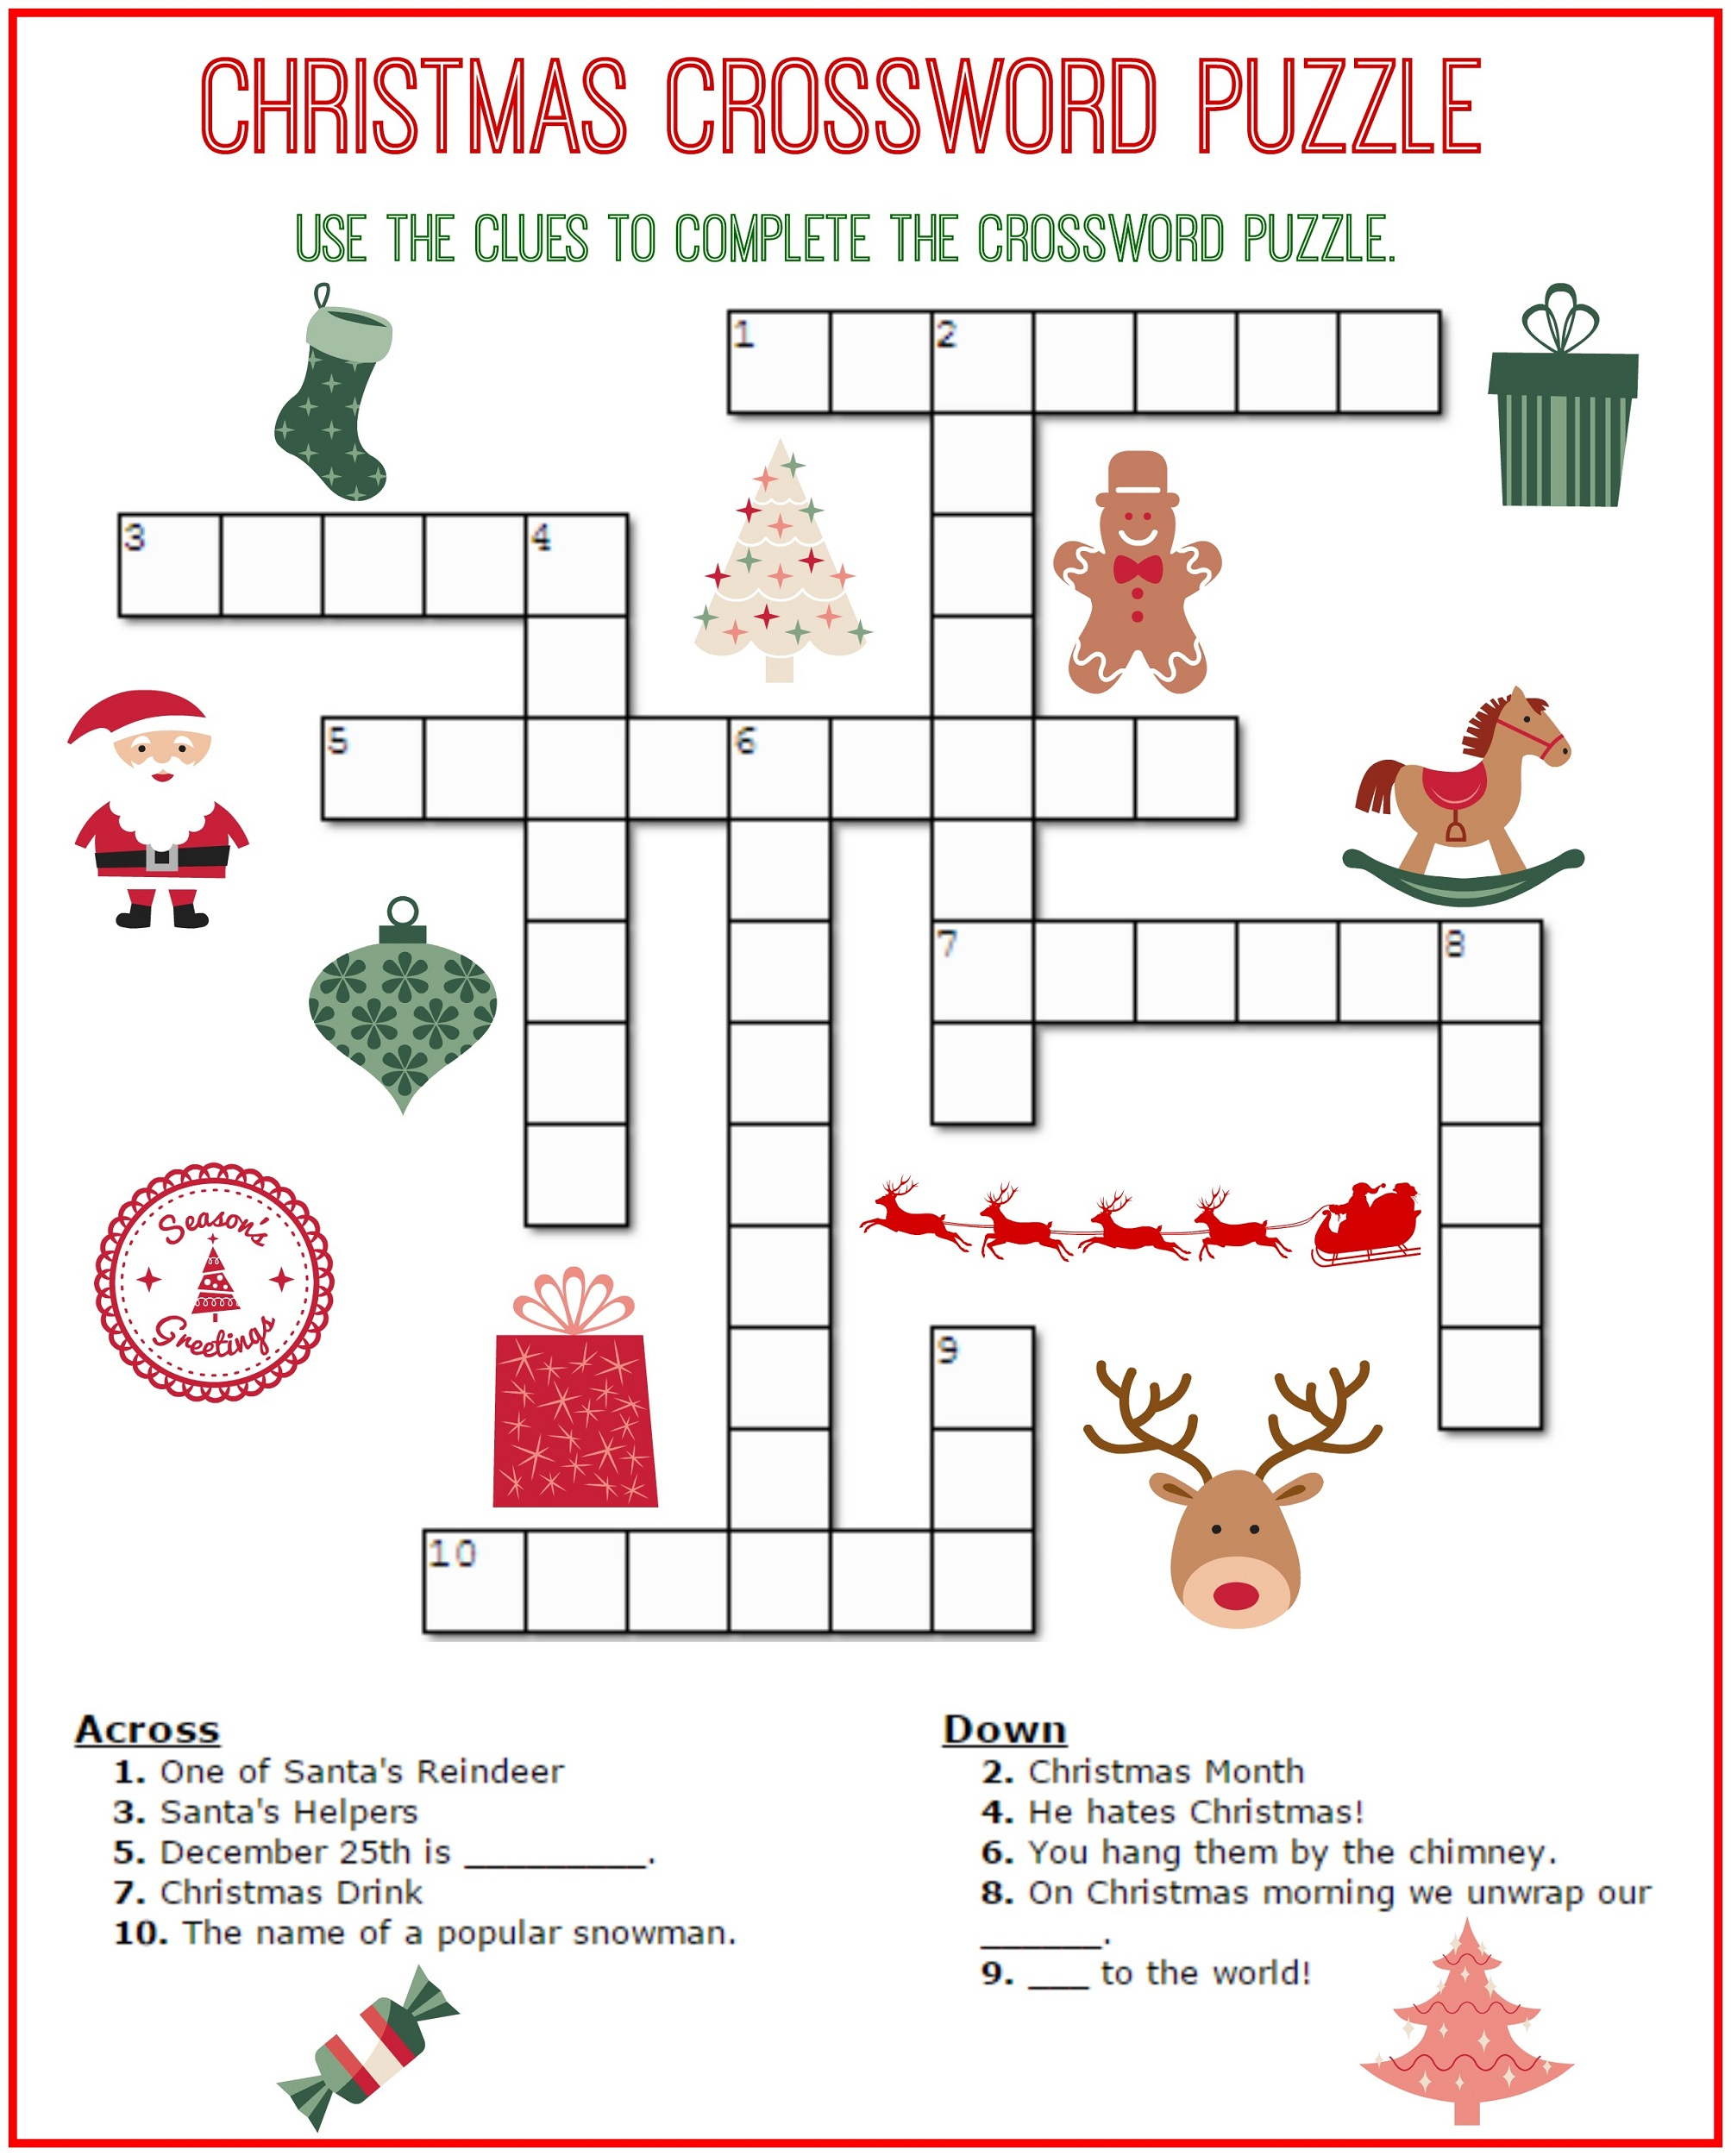 Crossword Puzzle Kids Printable 2017 | Kiddo Shelter - Printable Word Puzzles For 5 Year Olds